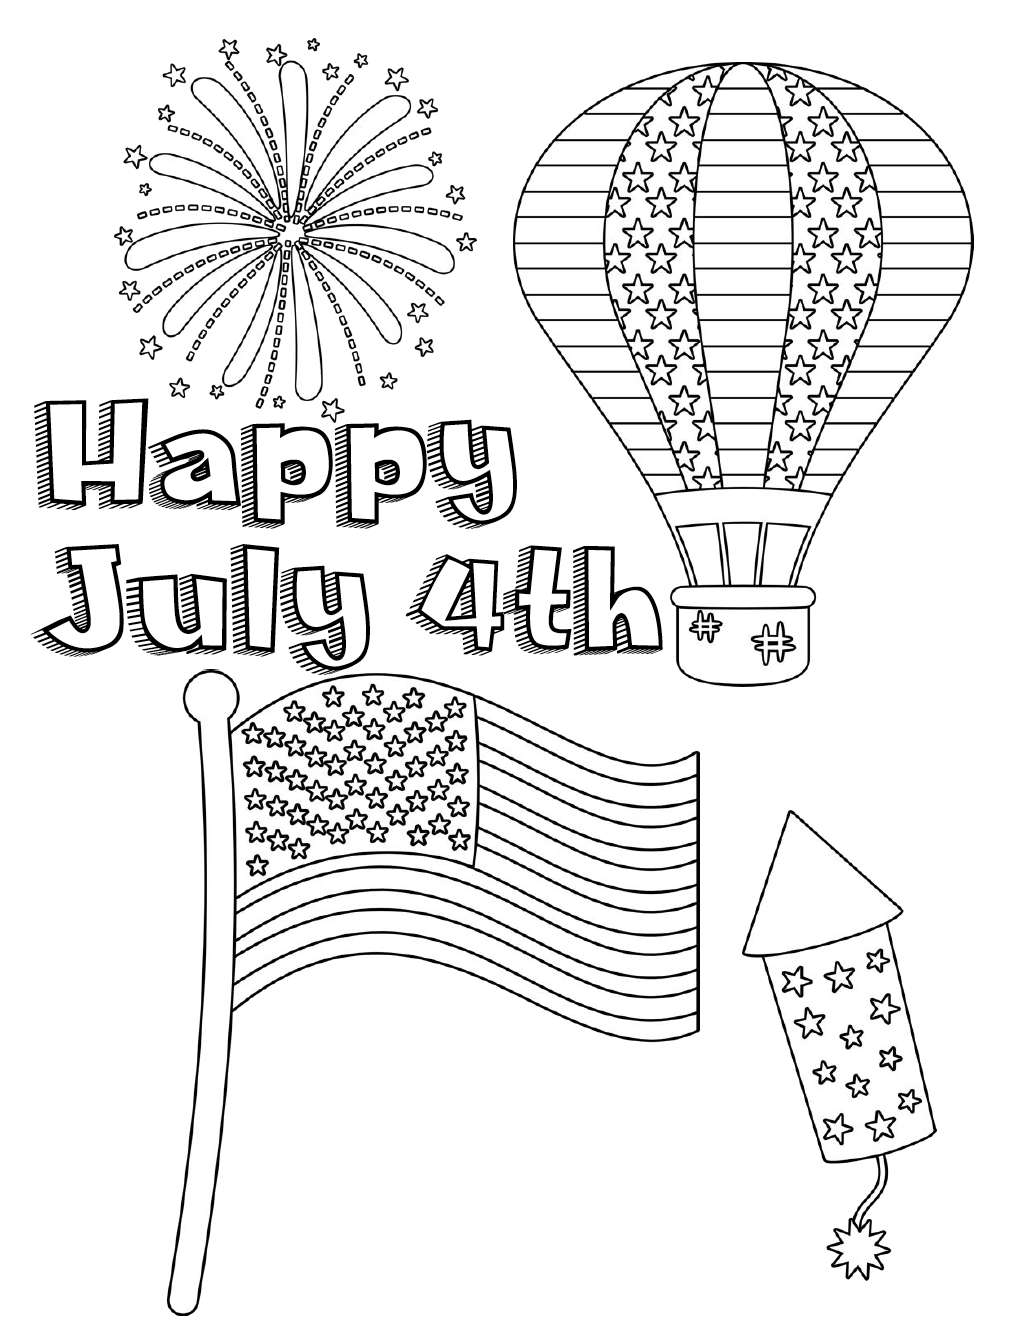 Free Printable Fourth Of July Coloring Pages 4 Different Designs Patriotic 4th